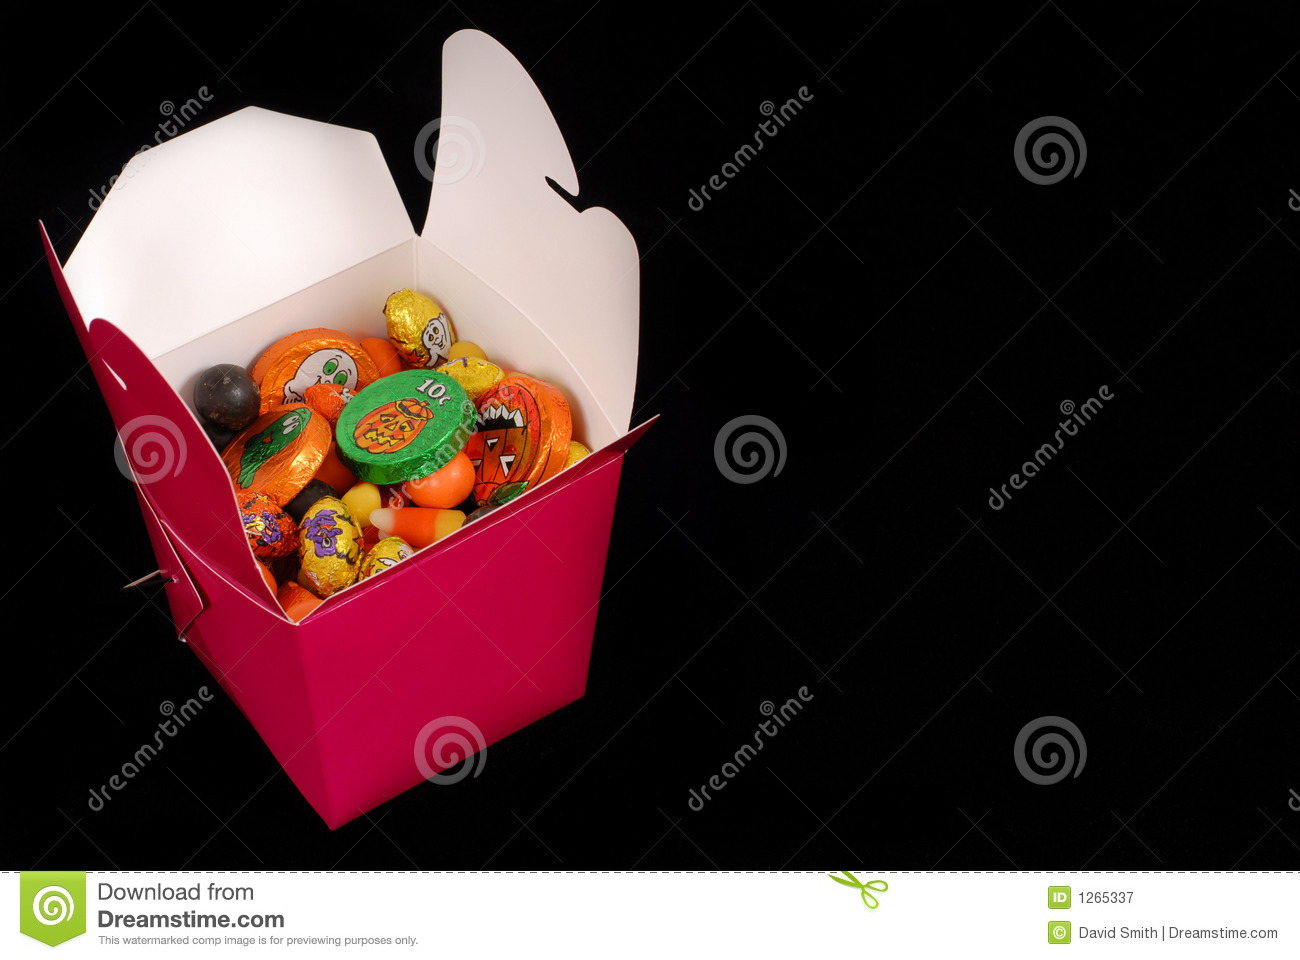 Halloween candy in a red chinese food container